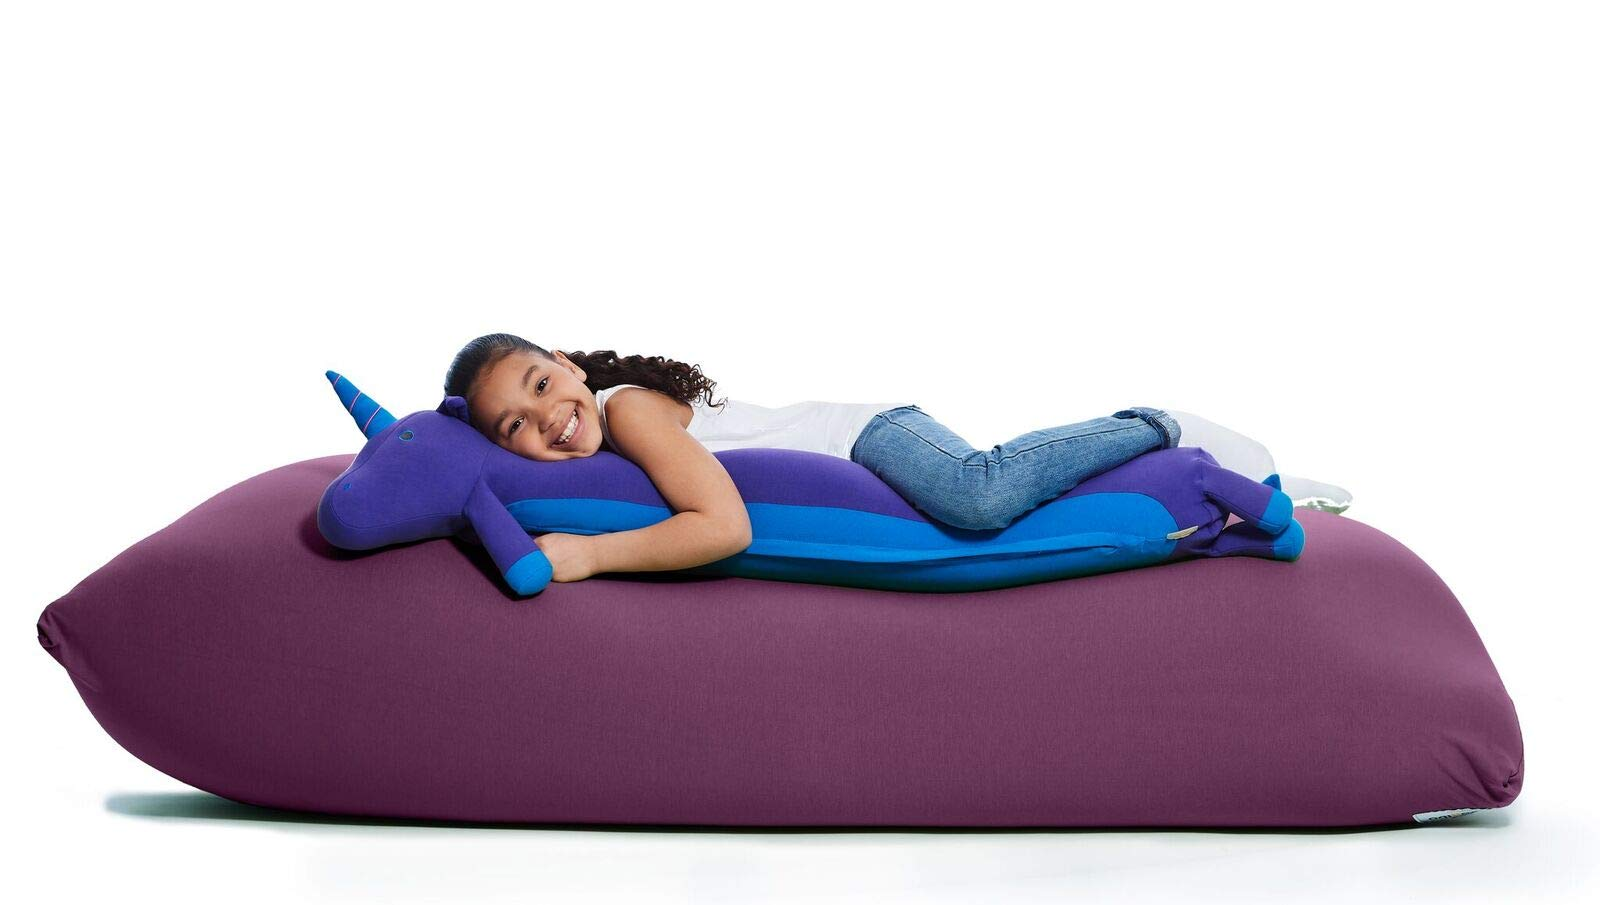 Yogibo Mates Roll Pillow - Comfortable Cylindrical Pillow w/Patented Fibead Filling - Removable Machine Washable Cotton & Spandex Cover - Perfect to Cuddle - Amazing Neck & Back Support - [Unicorn] by Yogibo